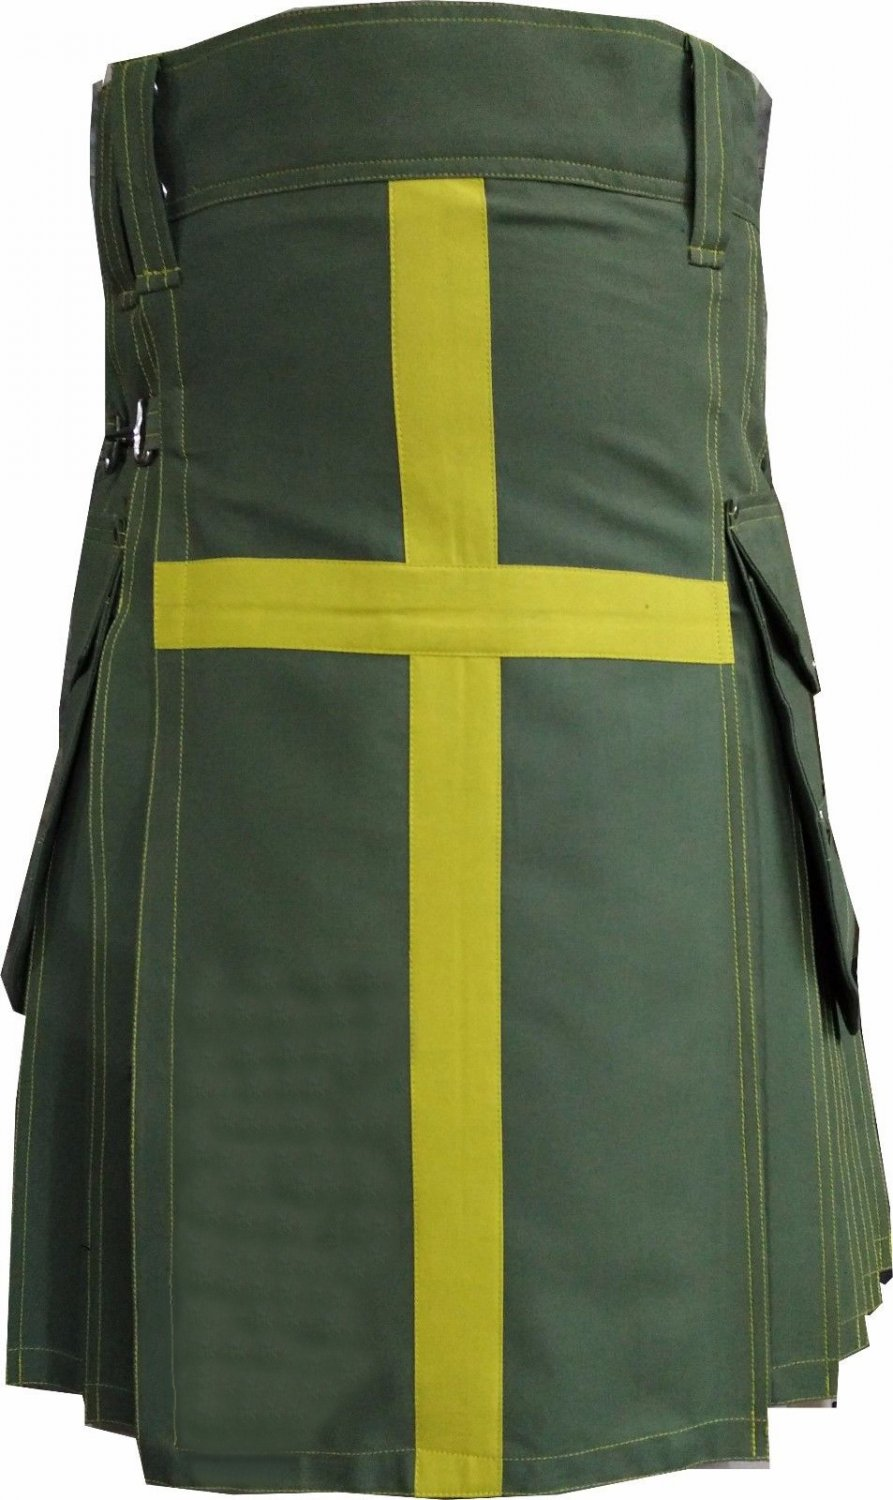 NEW DC ACTIVE MEN OLIVE GREEN AND YELLOW HANDMADE UNISEX COTTON UTILITY KILT SIZE 40